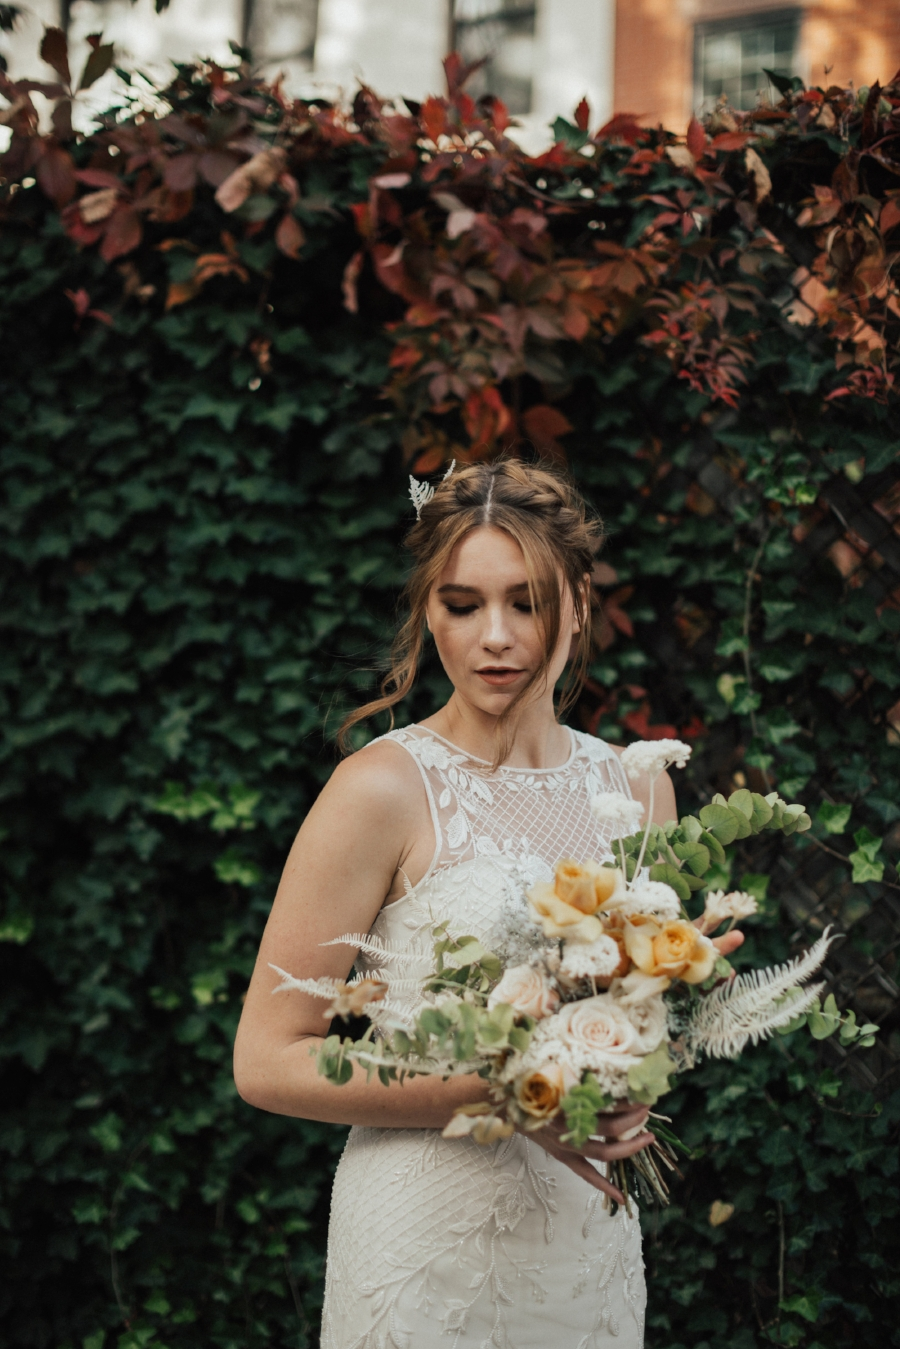 ivory-and-beau-bridal-boutique-marina-semone-trunk-show-marina-semone-wedding-gowns-vintage-inspired-wedding-gownsivory-and-beau-bridal-boutique-marina-semone-trunk-show-marina-semone-wedding-gowns-vintage-inspired-wedding-gowns-4.jpg